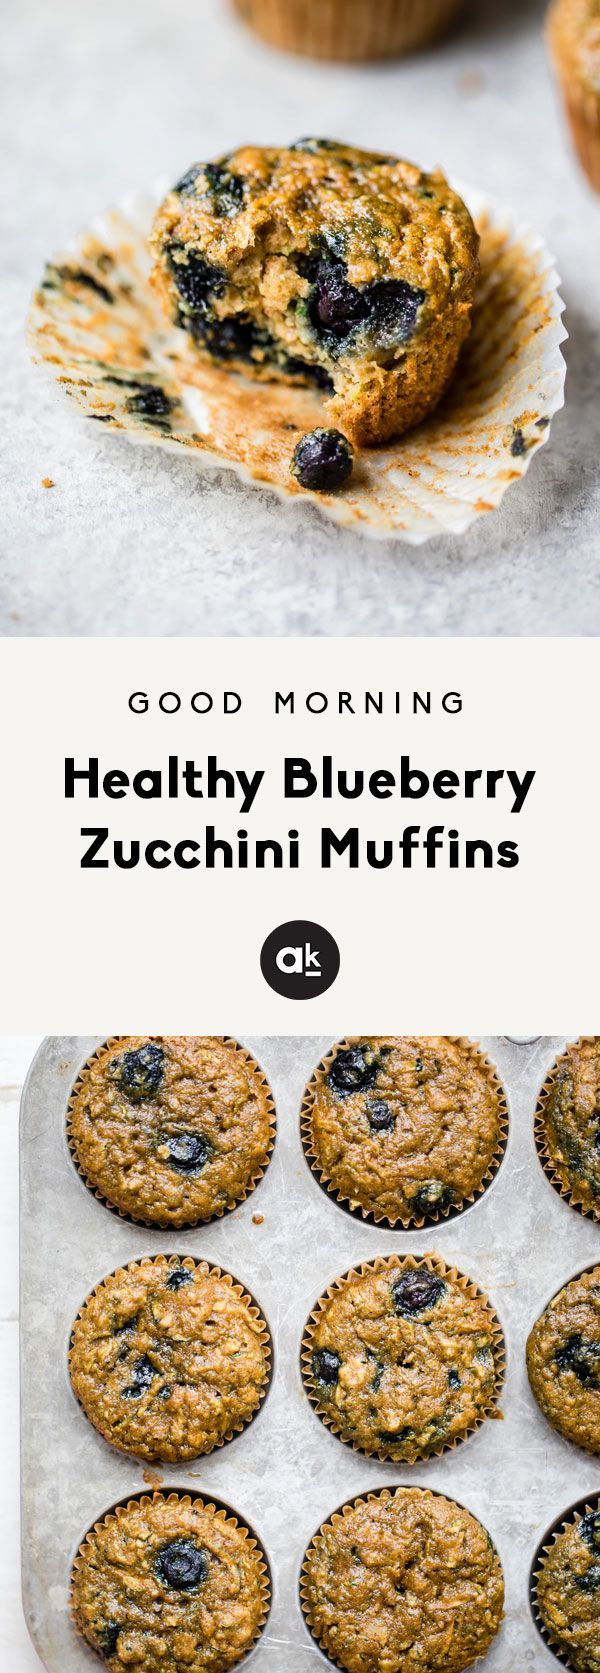 Healthy blueberry zucchini muffins made extra moist thanks to zucchini and applesauce! Naturally sweetened with pure maple syrup instead of sugar. Great for snacking & freezer-friendly too! blueberry zucchini muffins made extra moist thanks to zucchini and applesauce! Naturally sweetened with pure maple syrup instead of sugar. Great for snacking & freezer-friendly too!